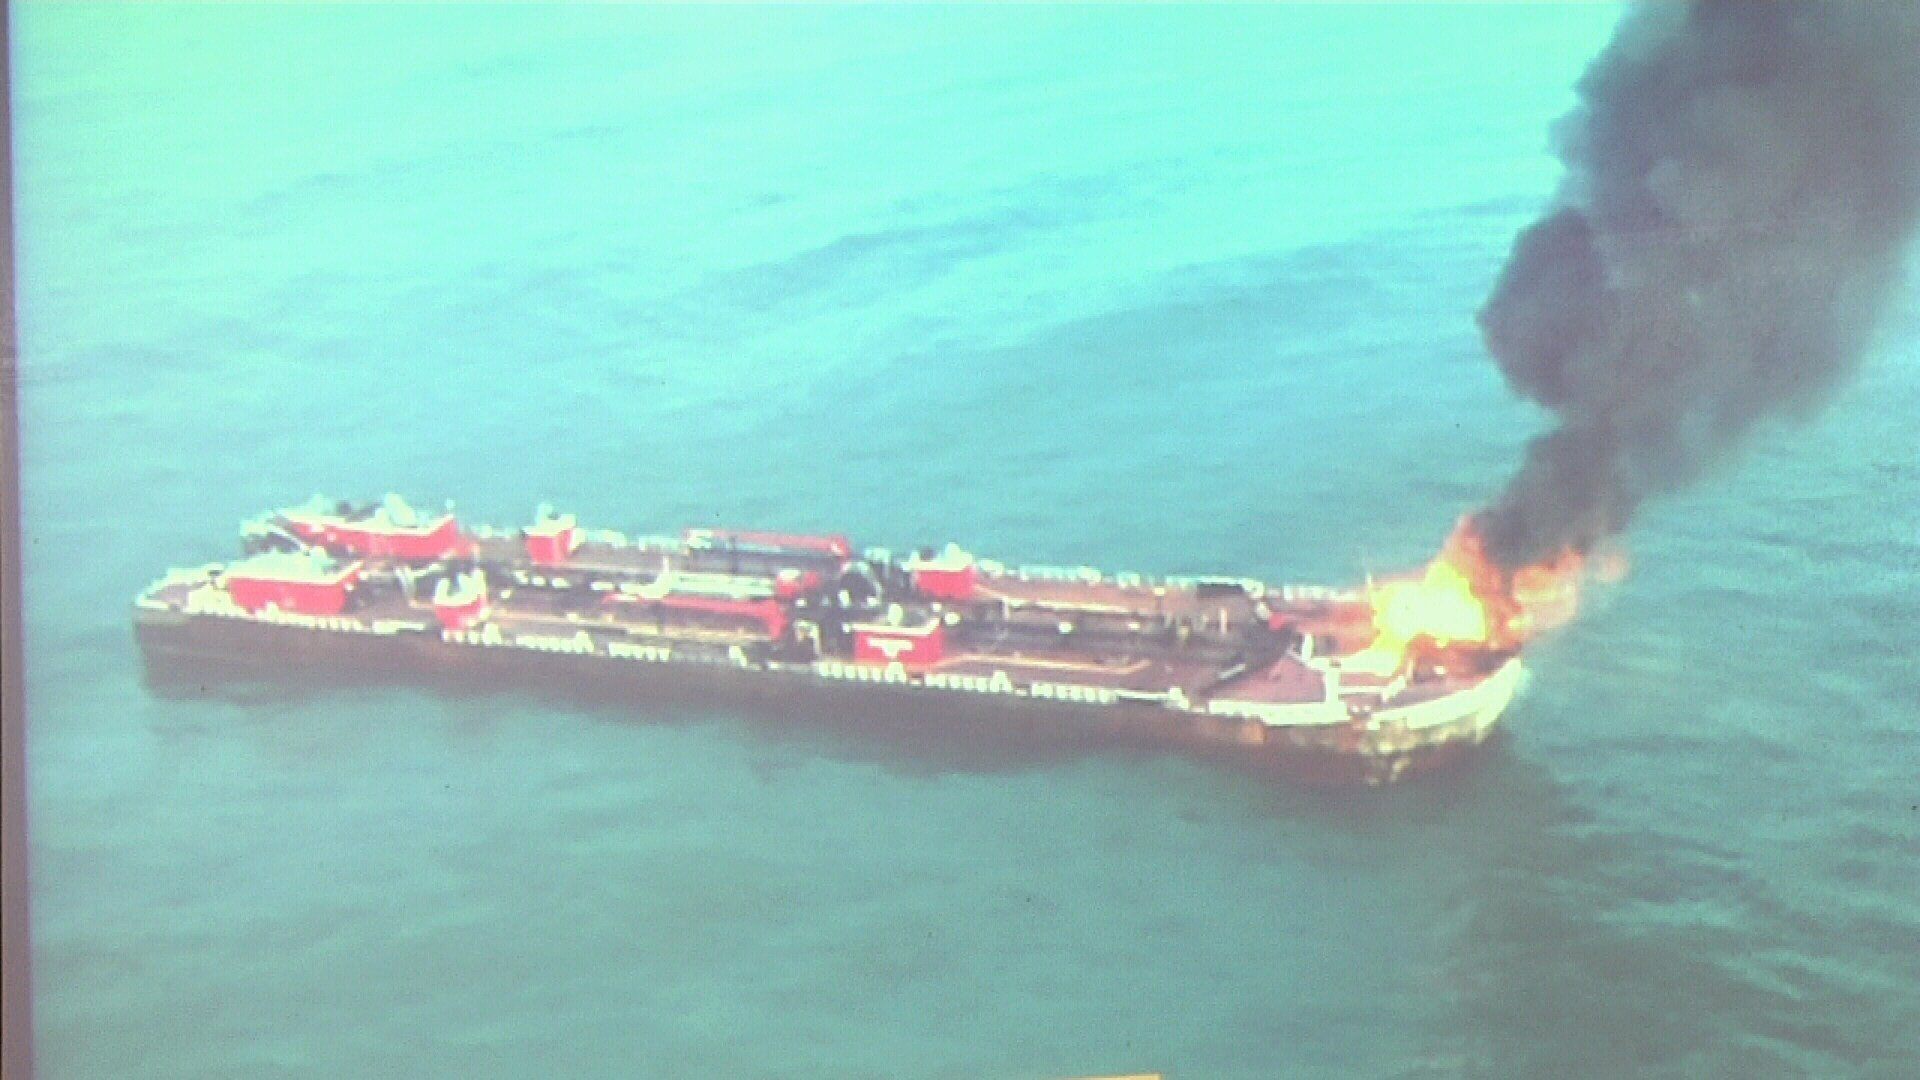 The Coast Guard briefs Port officials on what was done well and what could have been improved in the response to last month's barge explosion.